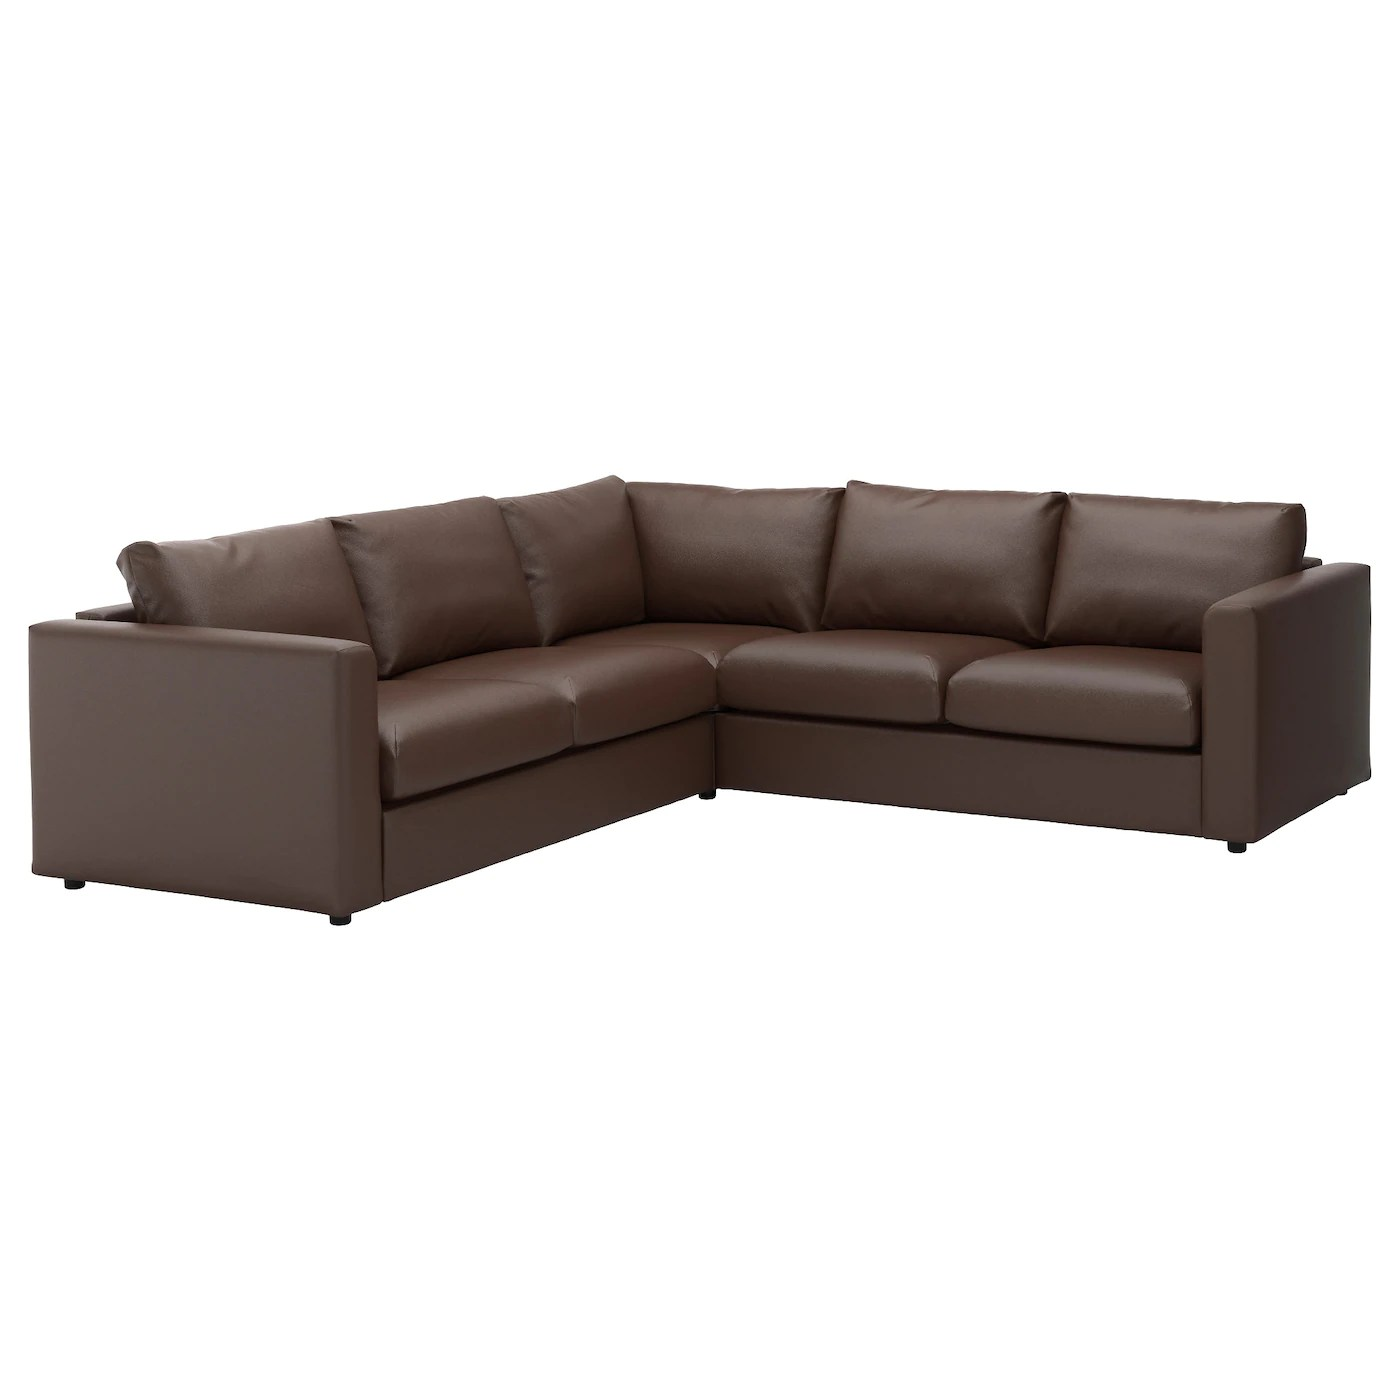 furniture village leather corner sofa bed sofas valencia modelo esther ikea vimle 4 seat 10 year guarantee read about the terms